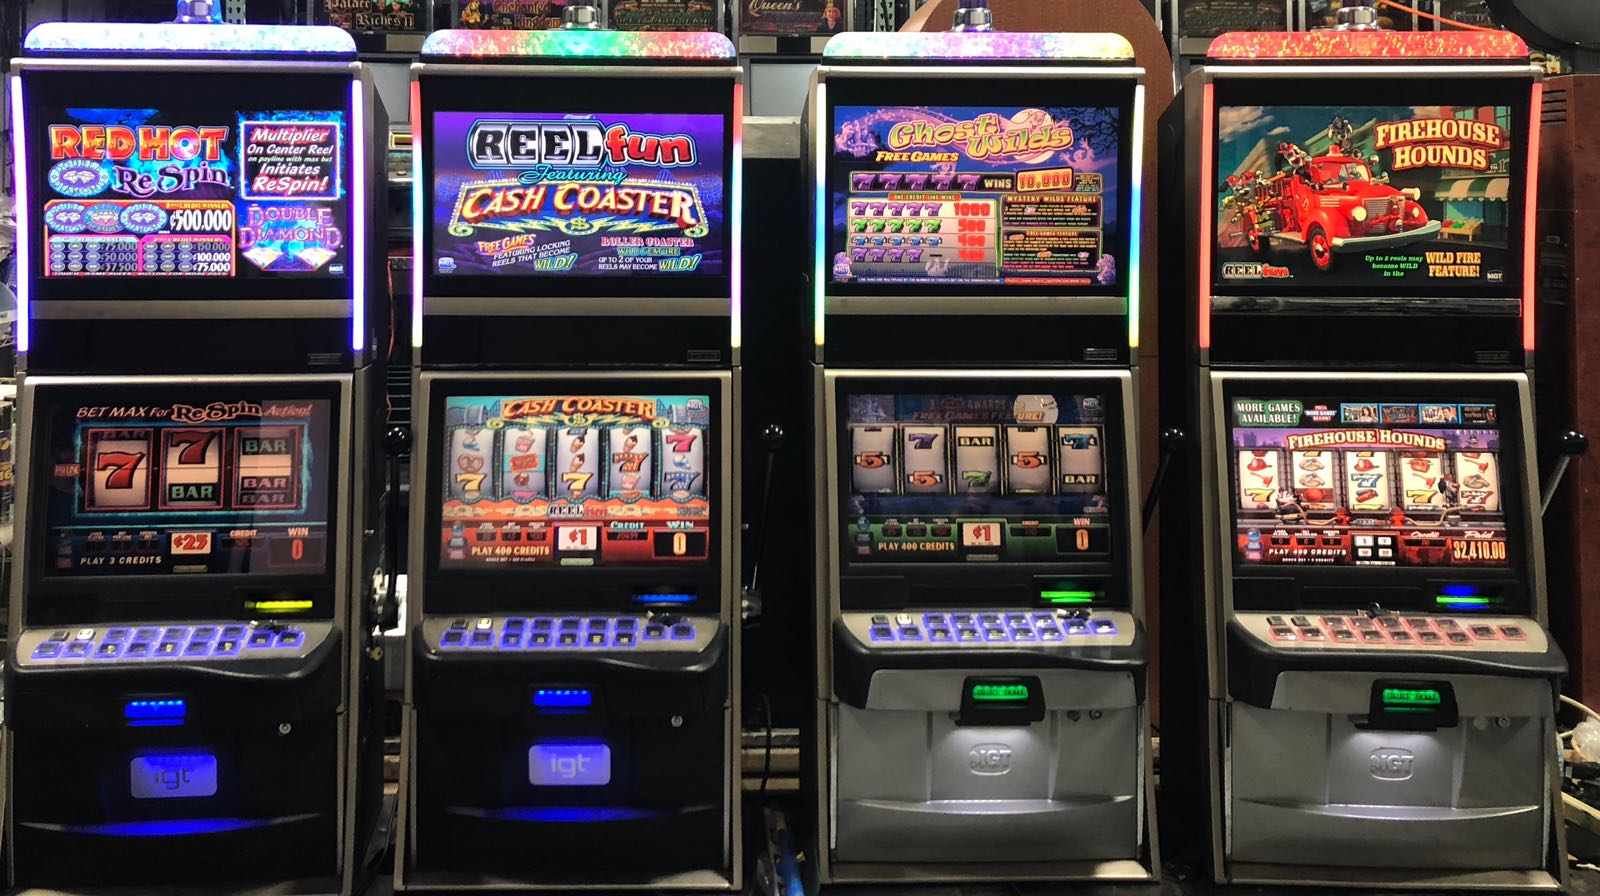 Slot games machines gambling in the bahamas